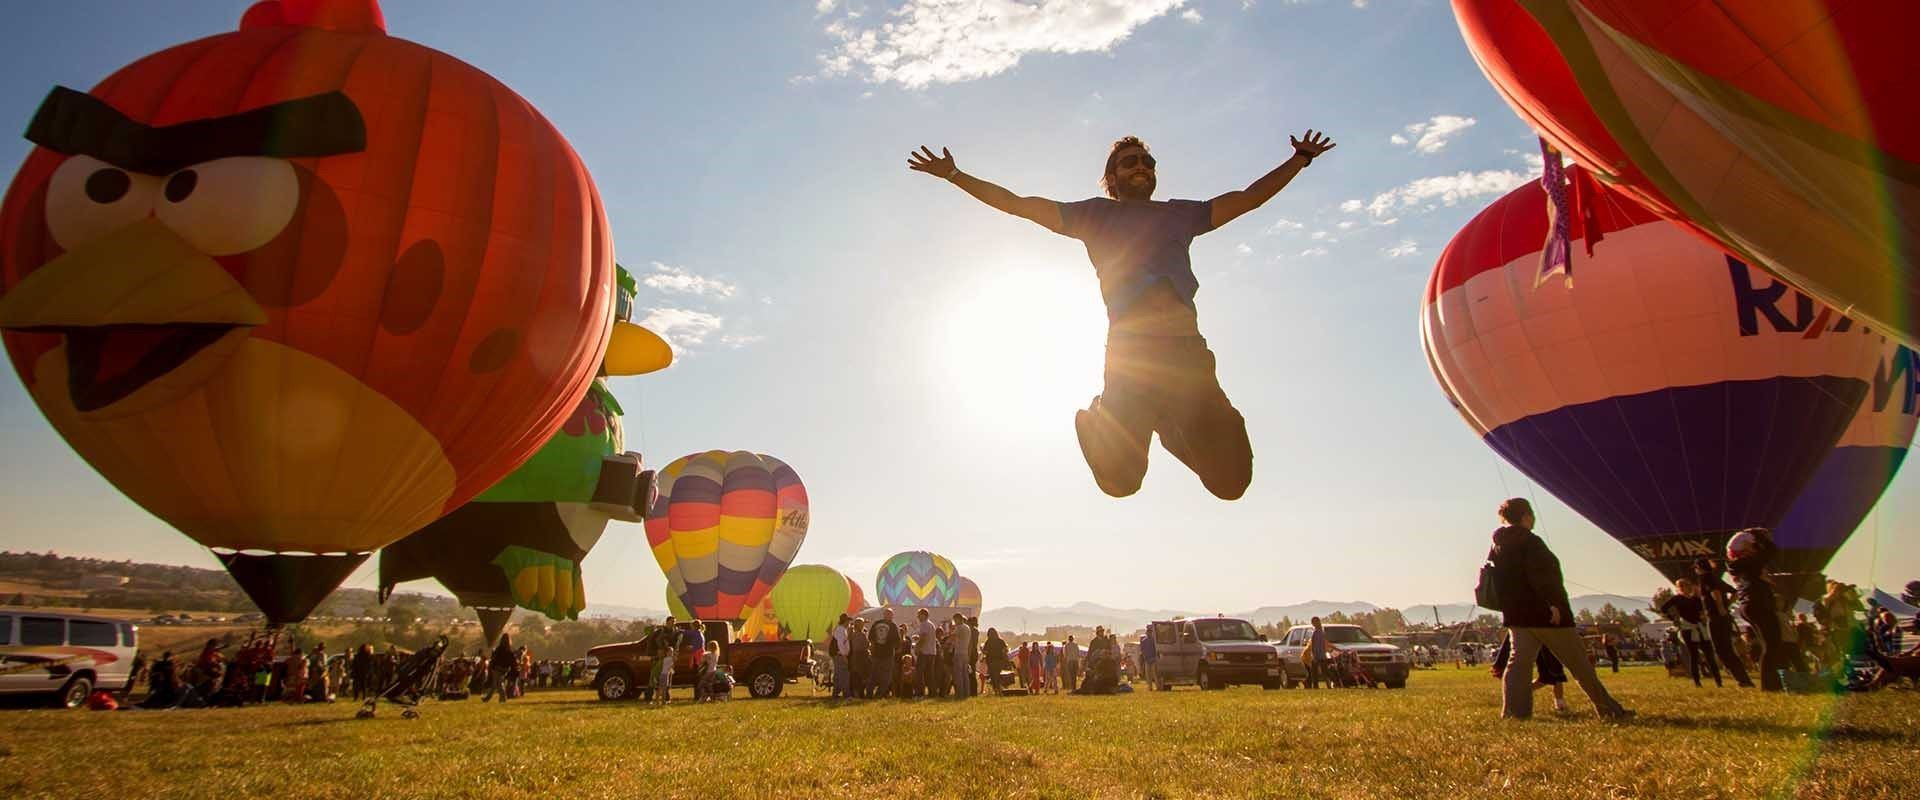 The Great Reno Balloon Race is the largest free hotair